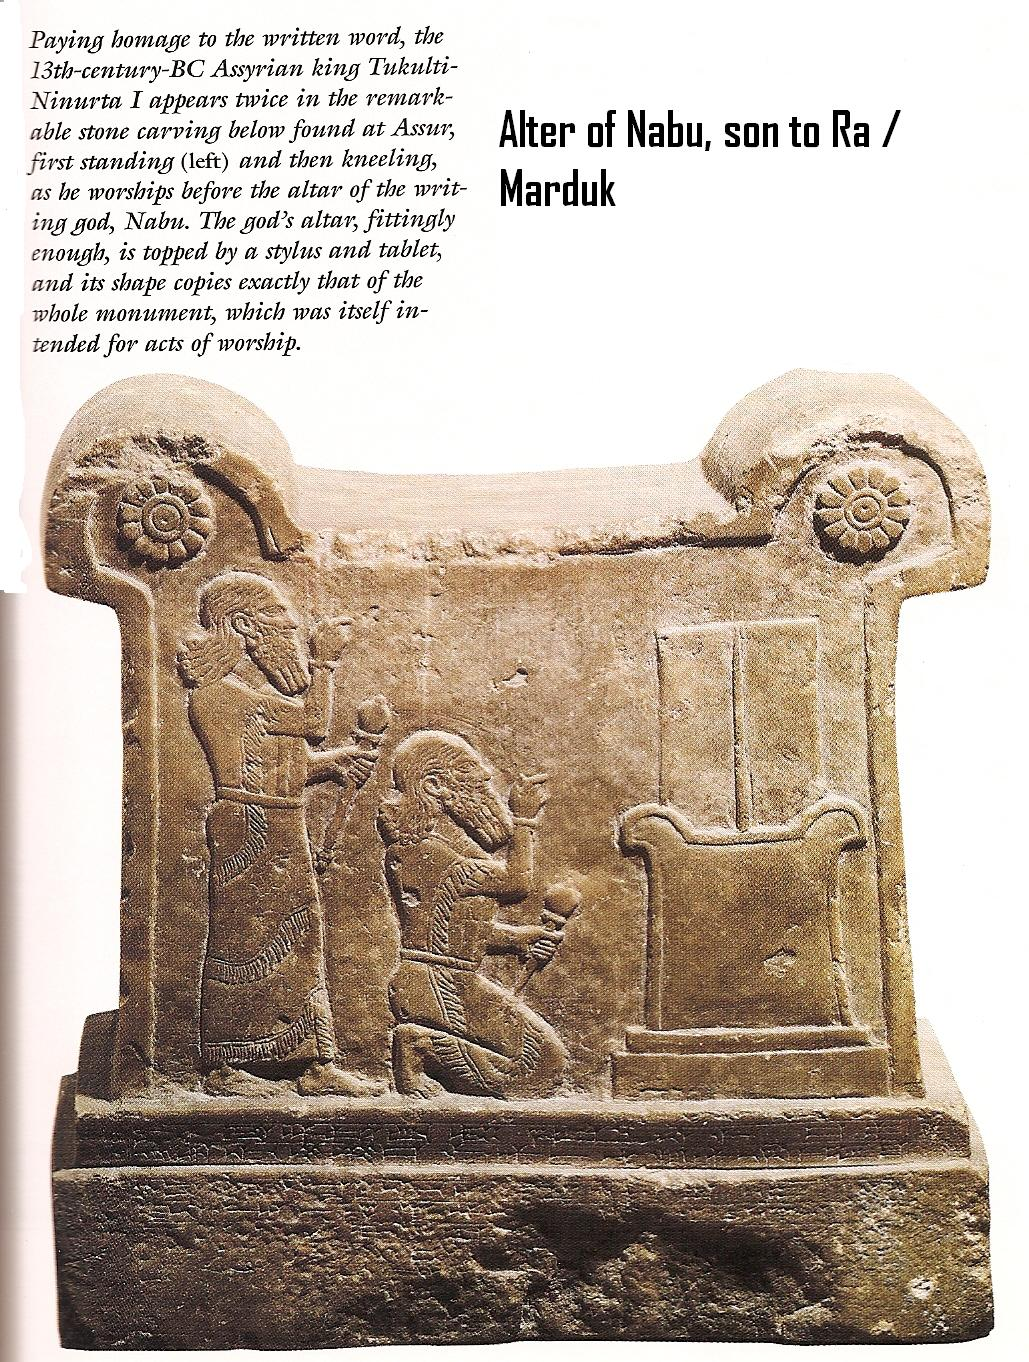 3b - King Tukulti-Ninurta I on the Alter of Nabu 1,300 B.C., artefacts of the gods & their giant mixed-breed offspring made kings, are shamefully being destroyed by Radical Islam, attempting to eliminate ancient evidence that directly contradicts the primitive 7th century teachings of Islam, teachings being carried out today by Radicals of Islam, or by the True-Believers of Islam, either way, they have been lied to by the power-brokers